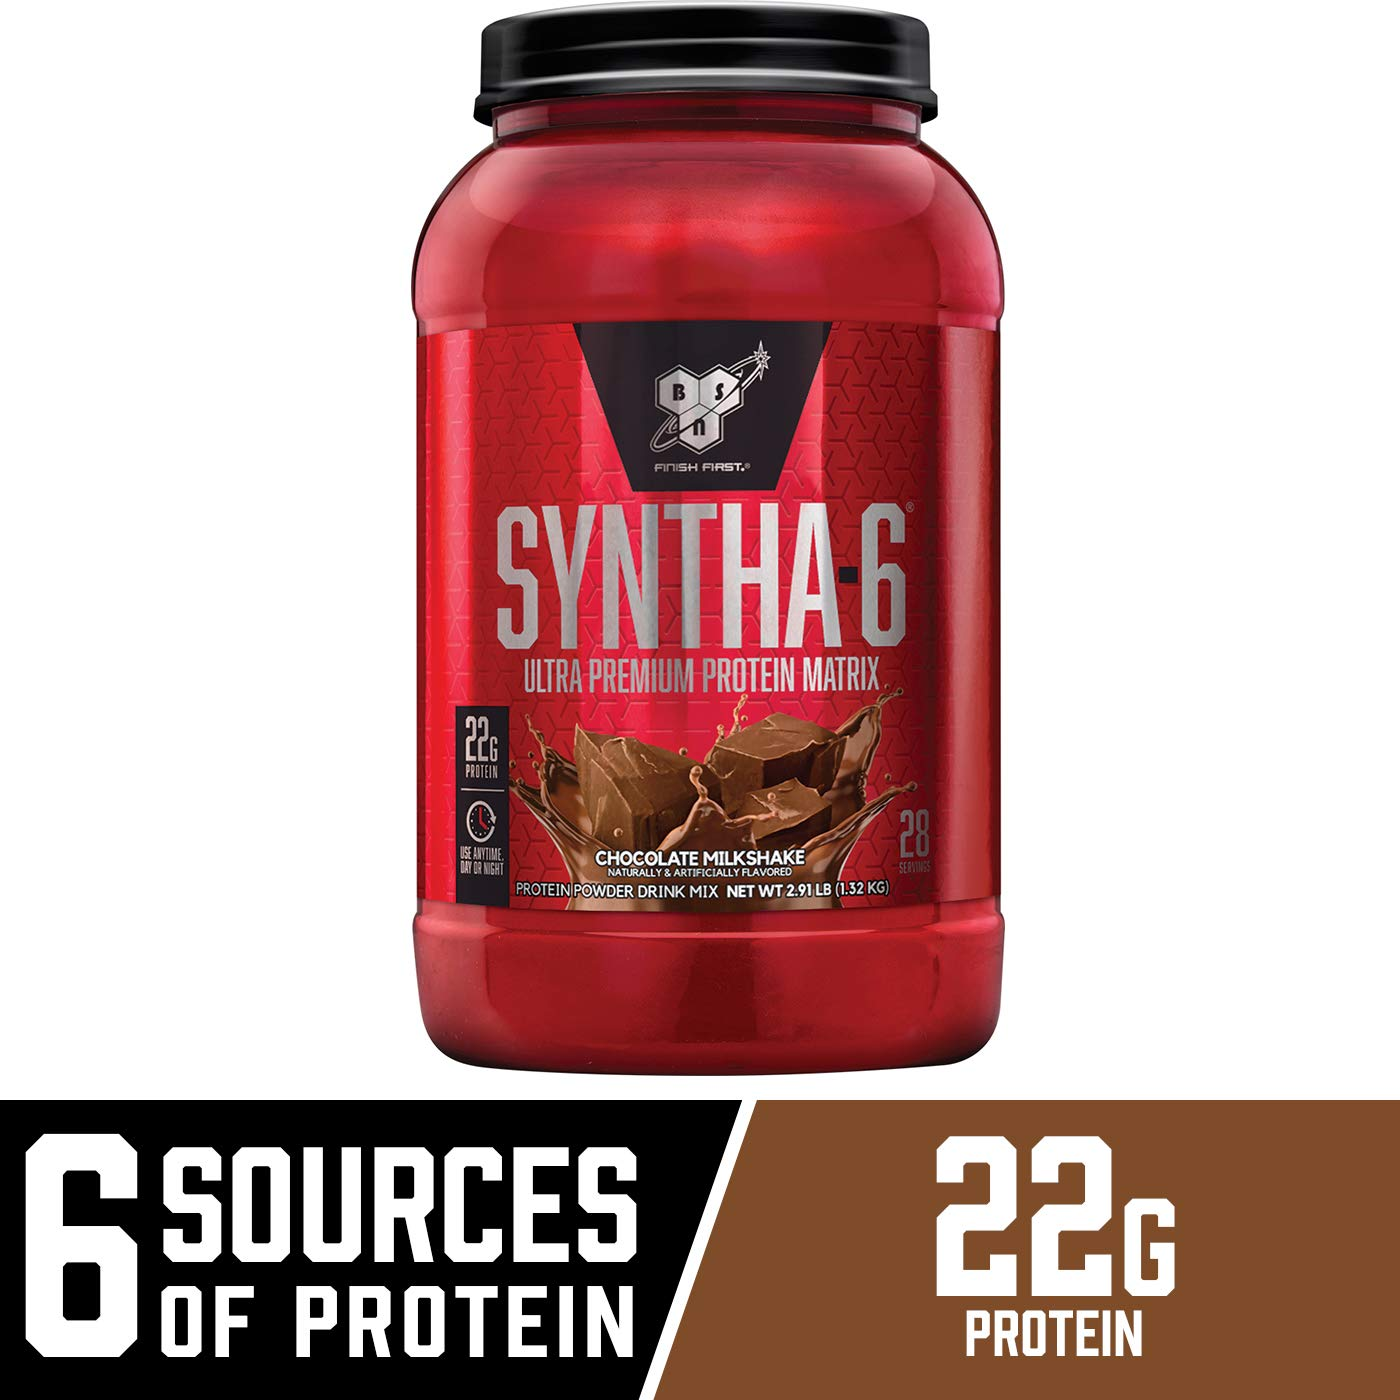 BSN SYNTHA-6 Whey Protein Powder, Micellar Casein, Milk Protein Isolate Powder, Chocolate Milkshake, 28 Servings Package May Vary